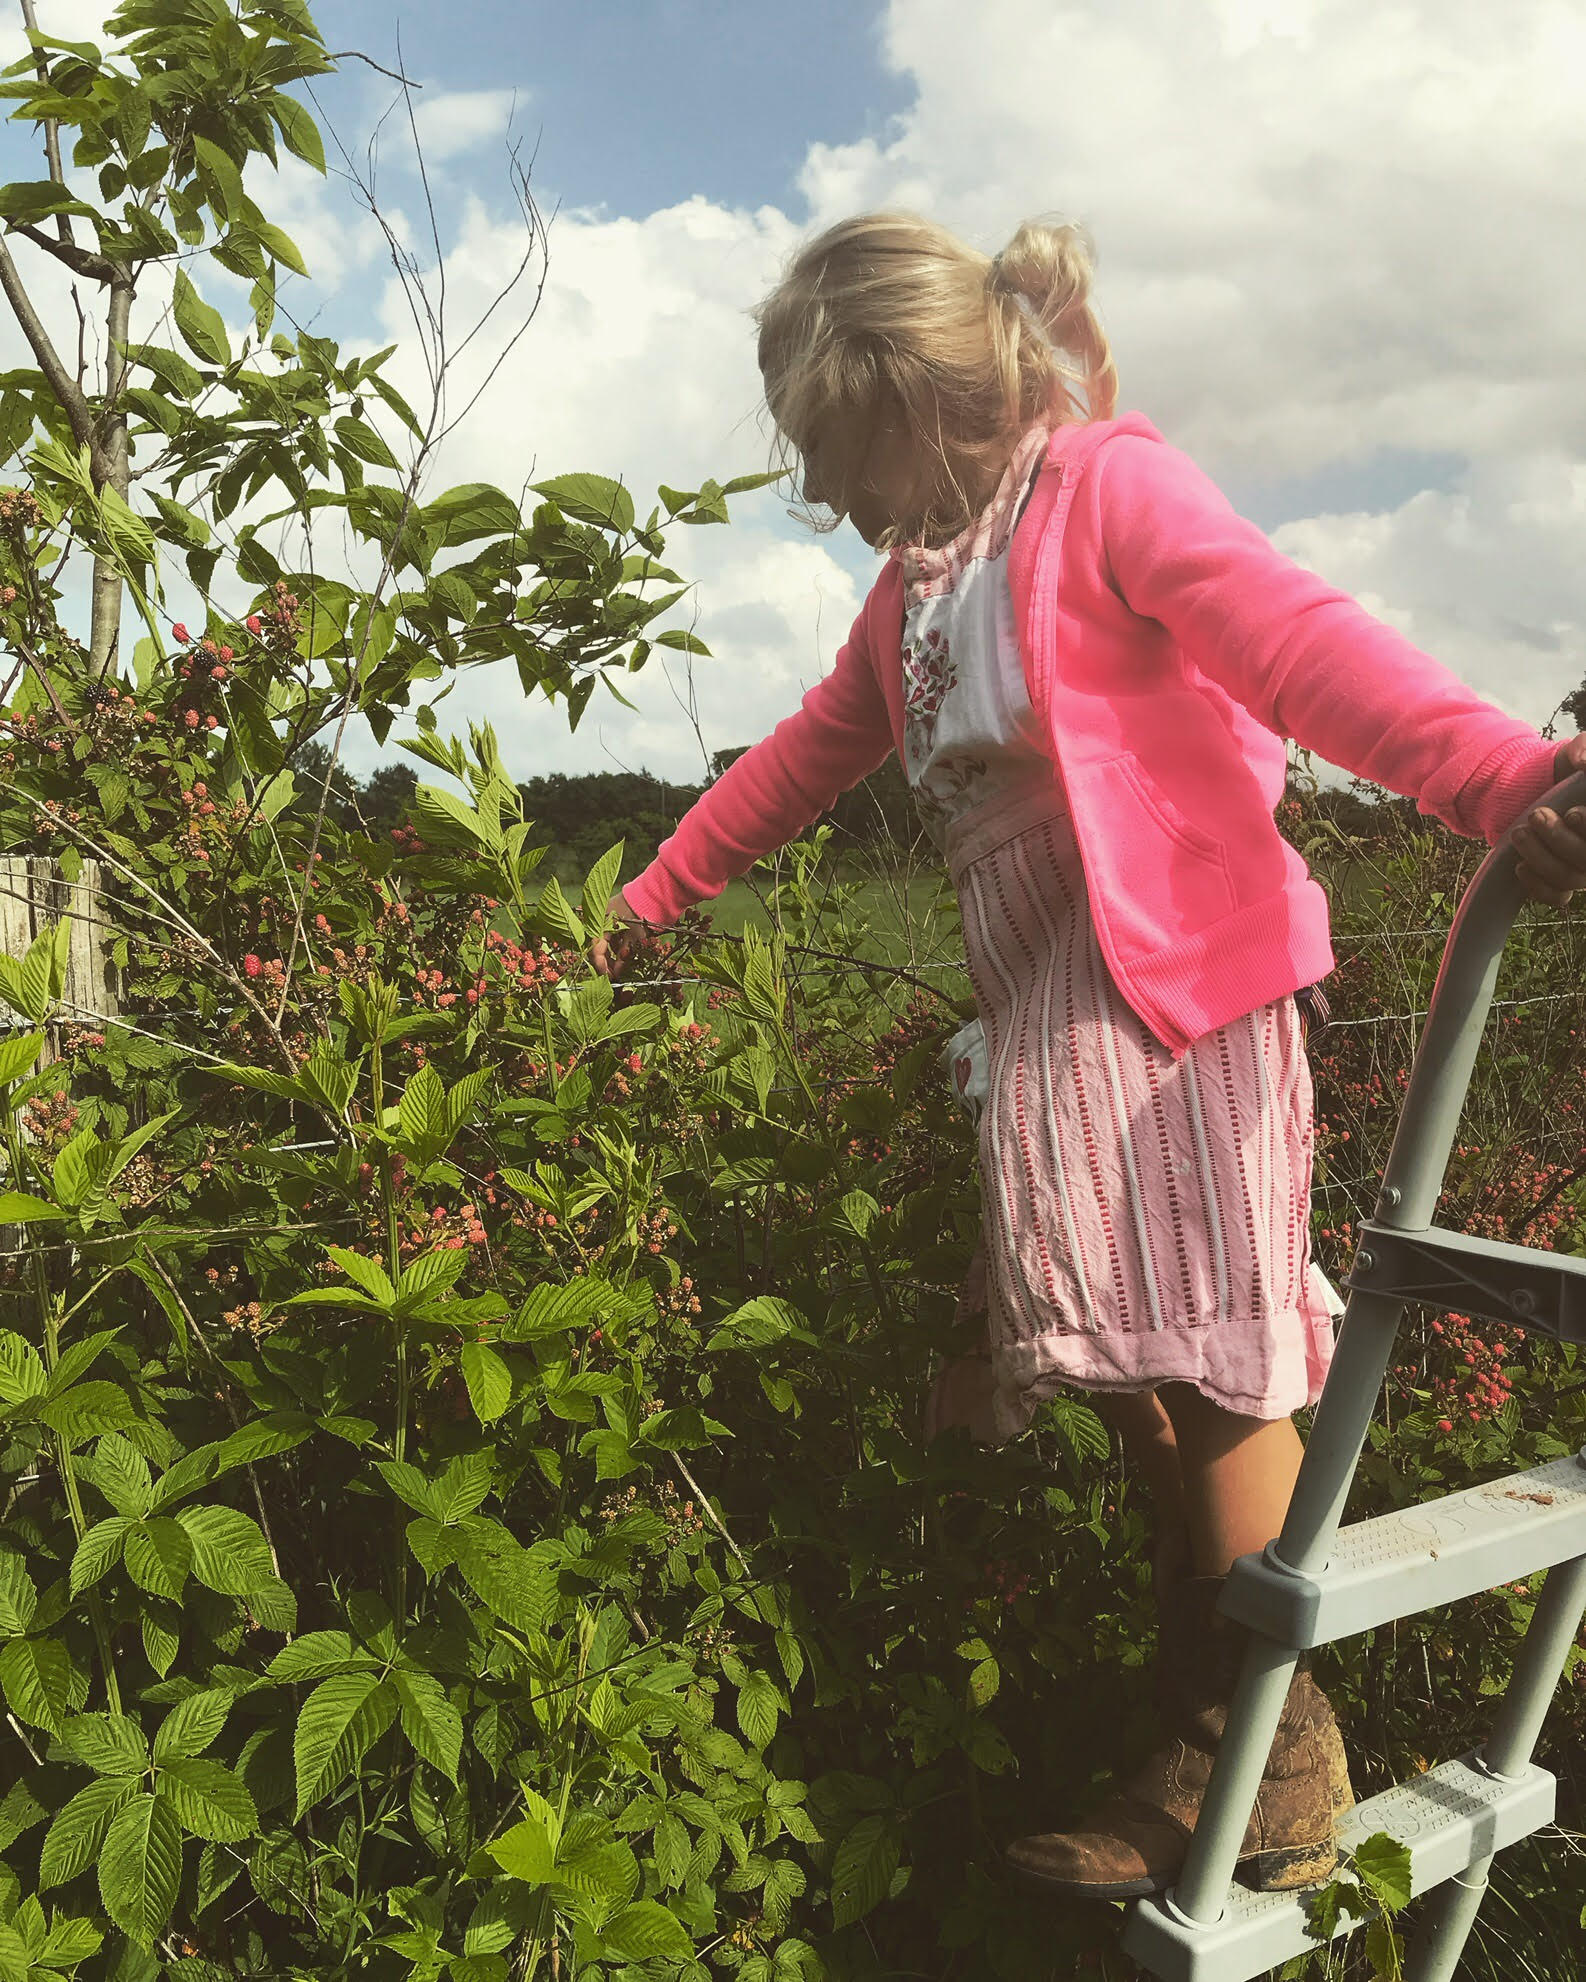 My daughter picking blackberries from our farm. They peak from June to July.